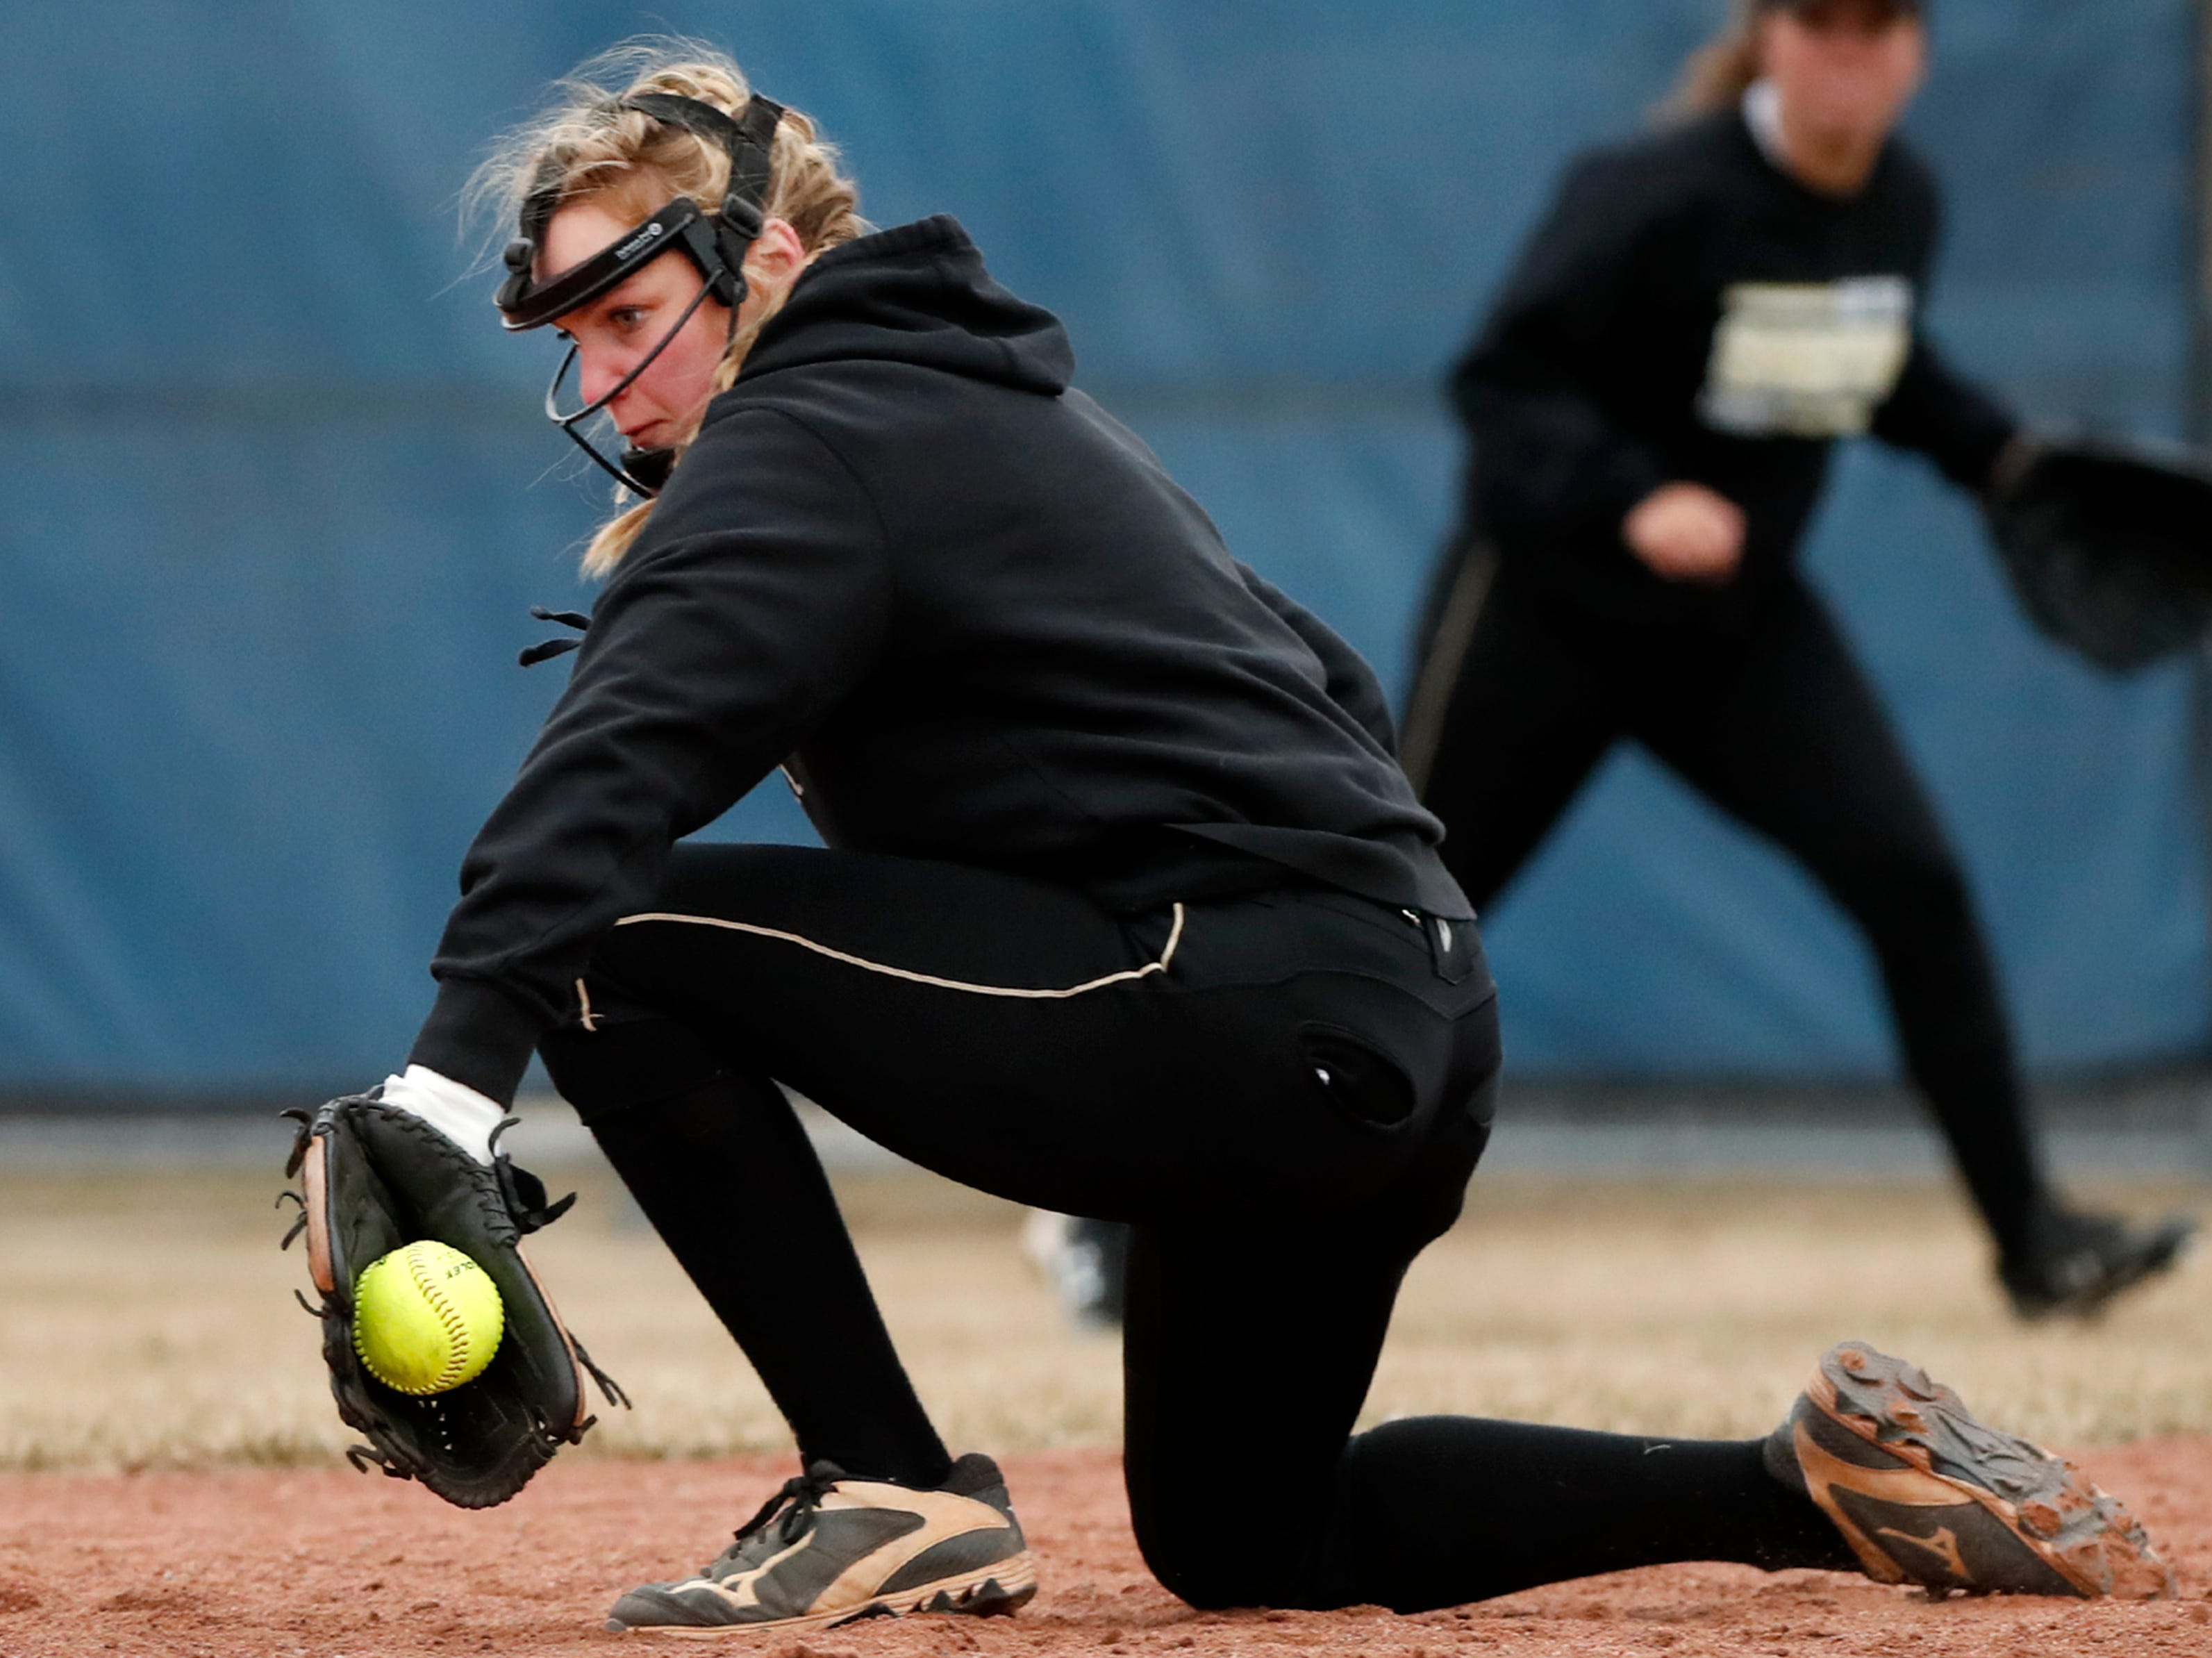 Oshkosh North High SchoolÕs Brooke Ellestad catches a ground ball during their game against Appleton East High School Thursday, April 4, 2019, in Appleton, Wis. Danny Damiani/USA TODAY NETWORK-Wisconsin